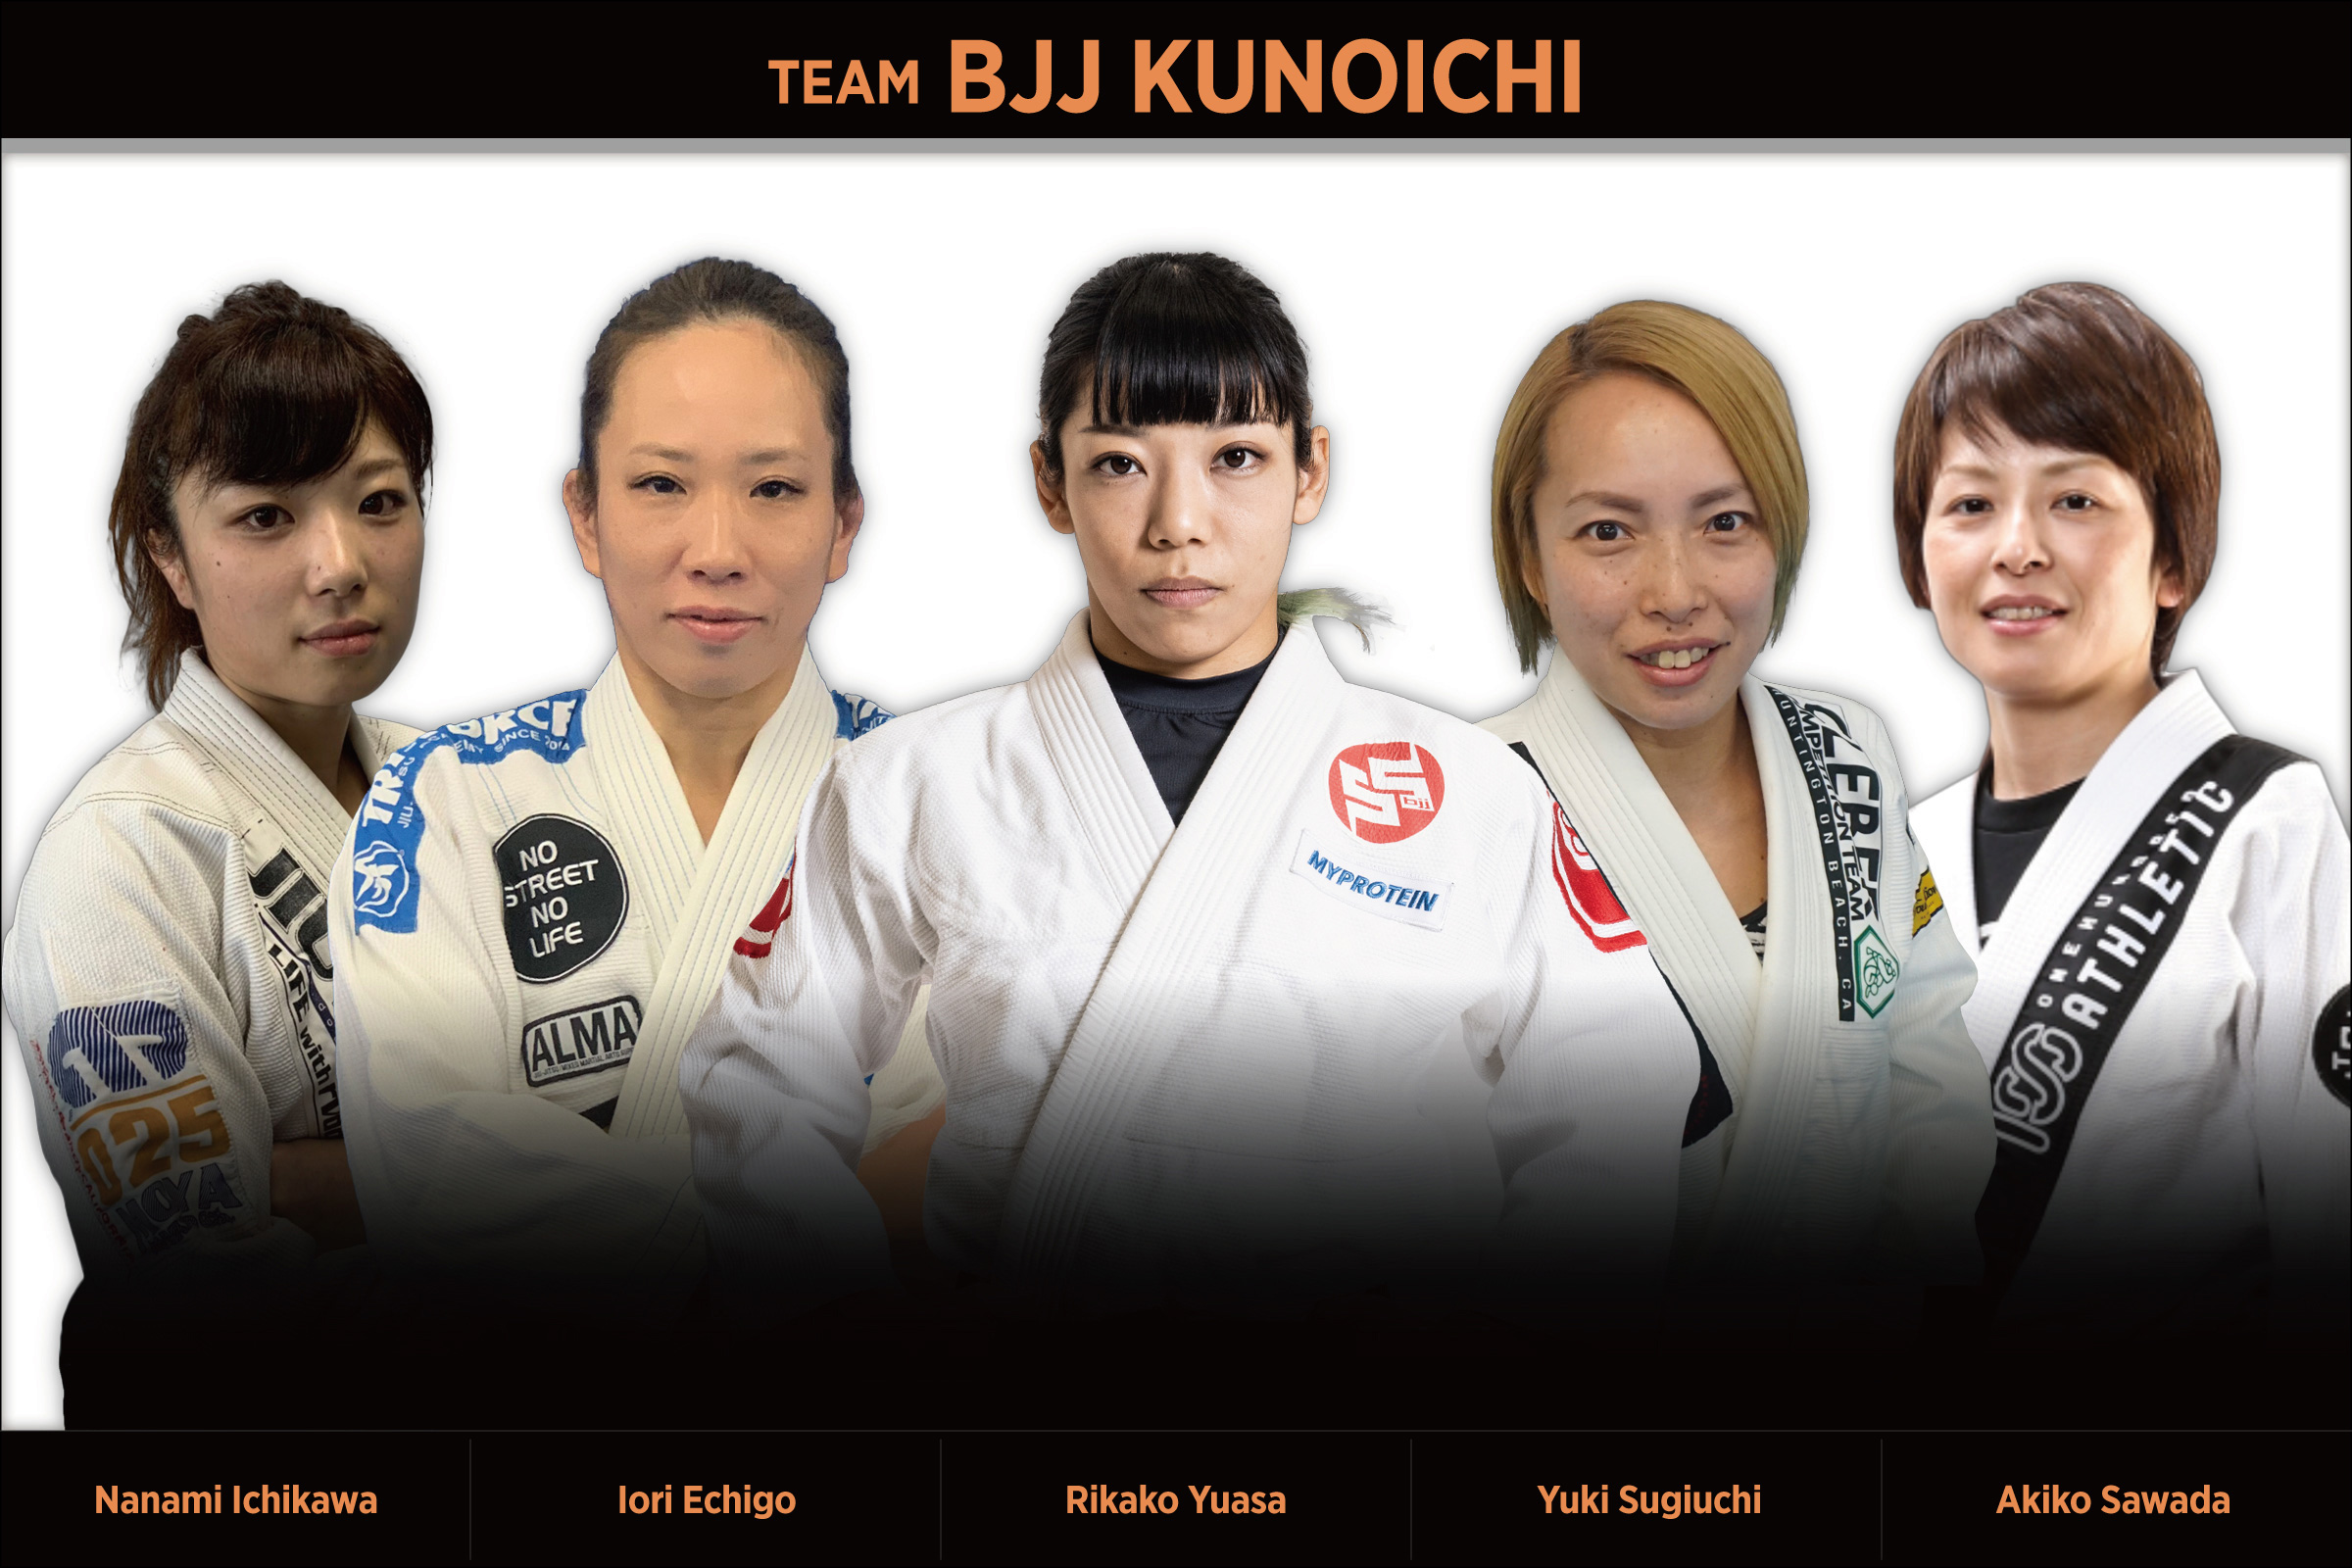 TEAM BJJ KUNOICHI